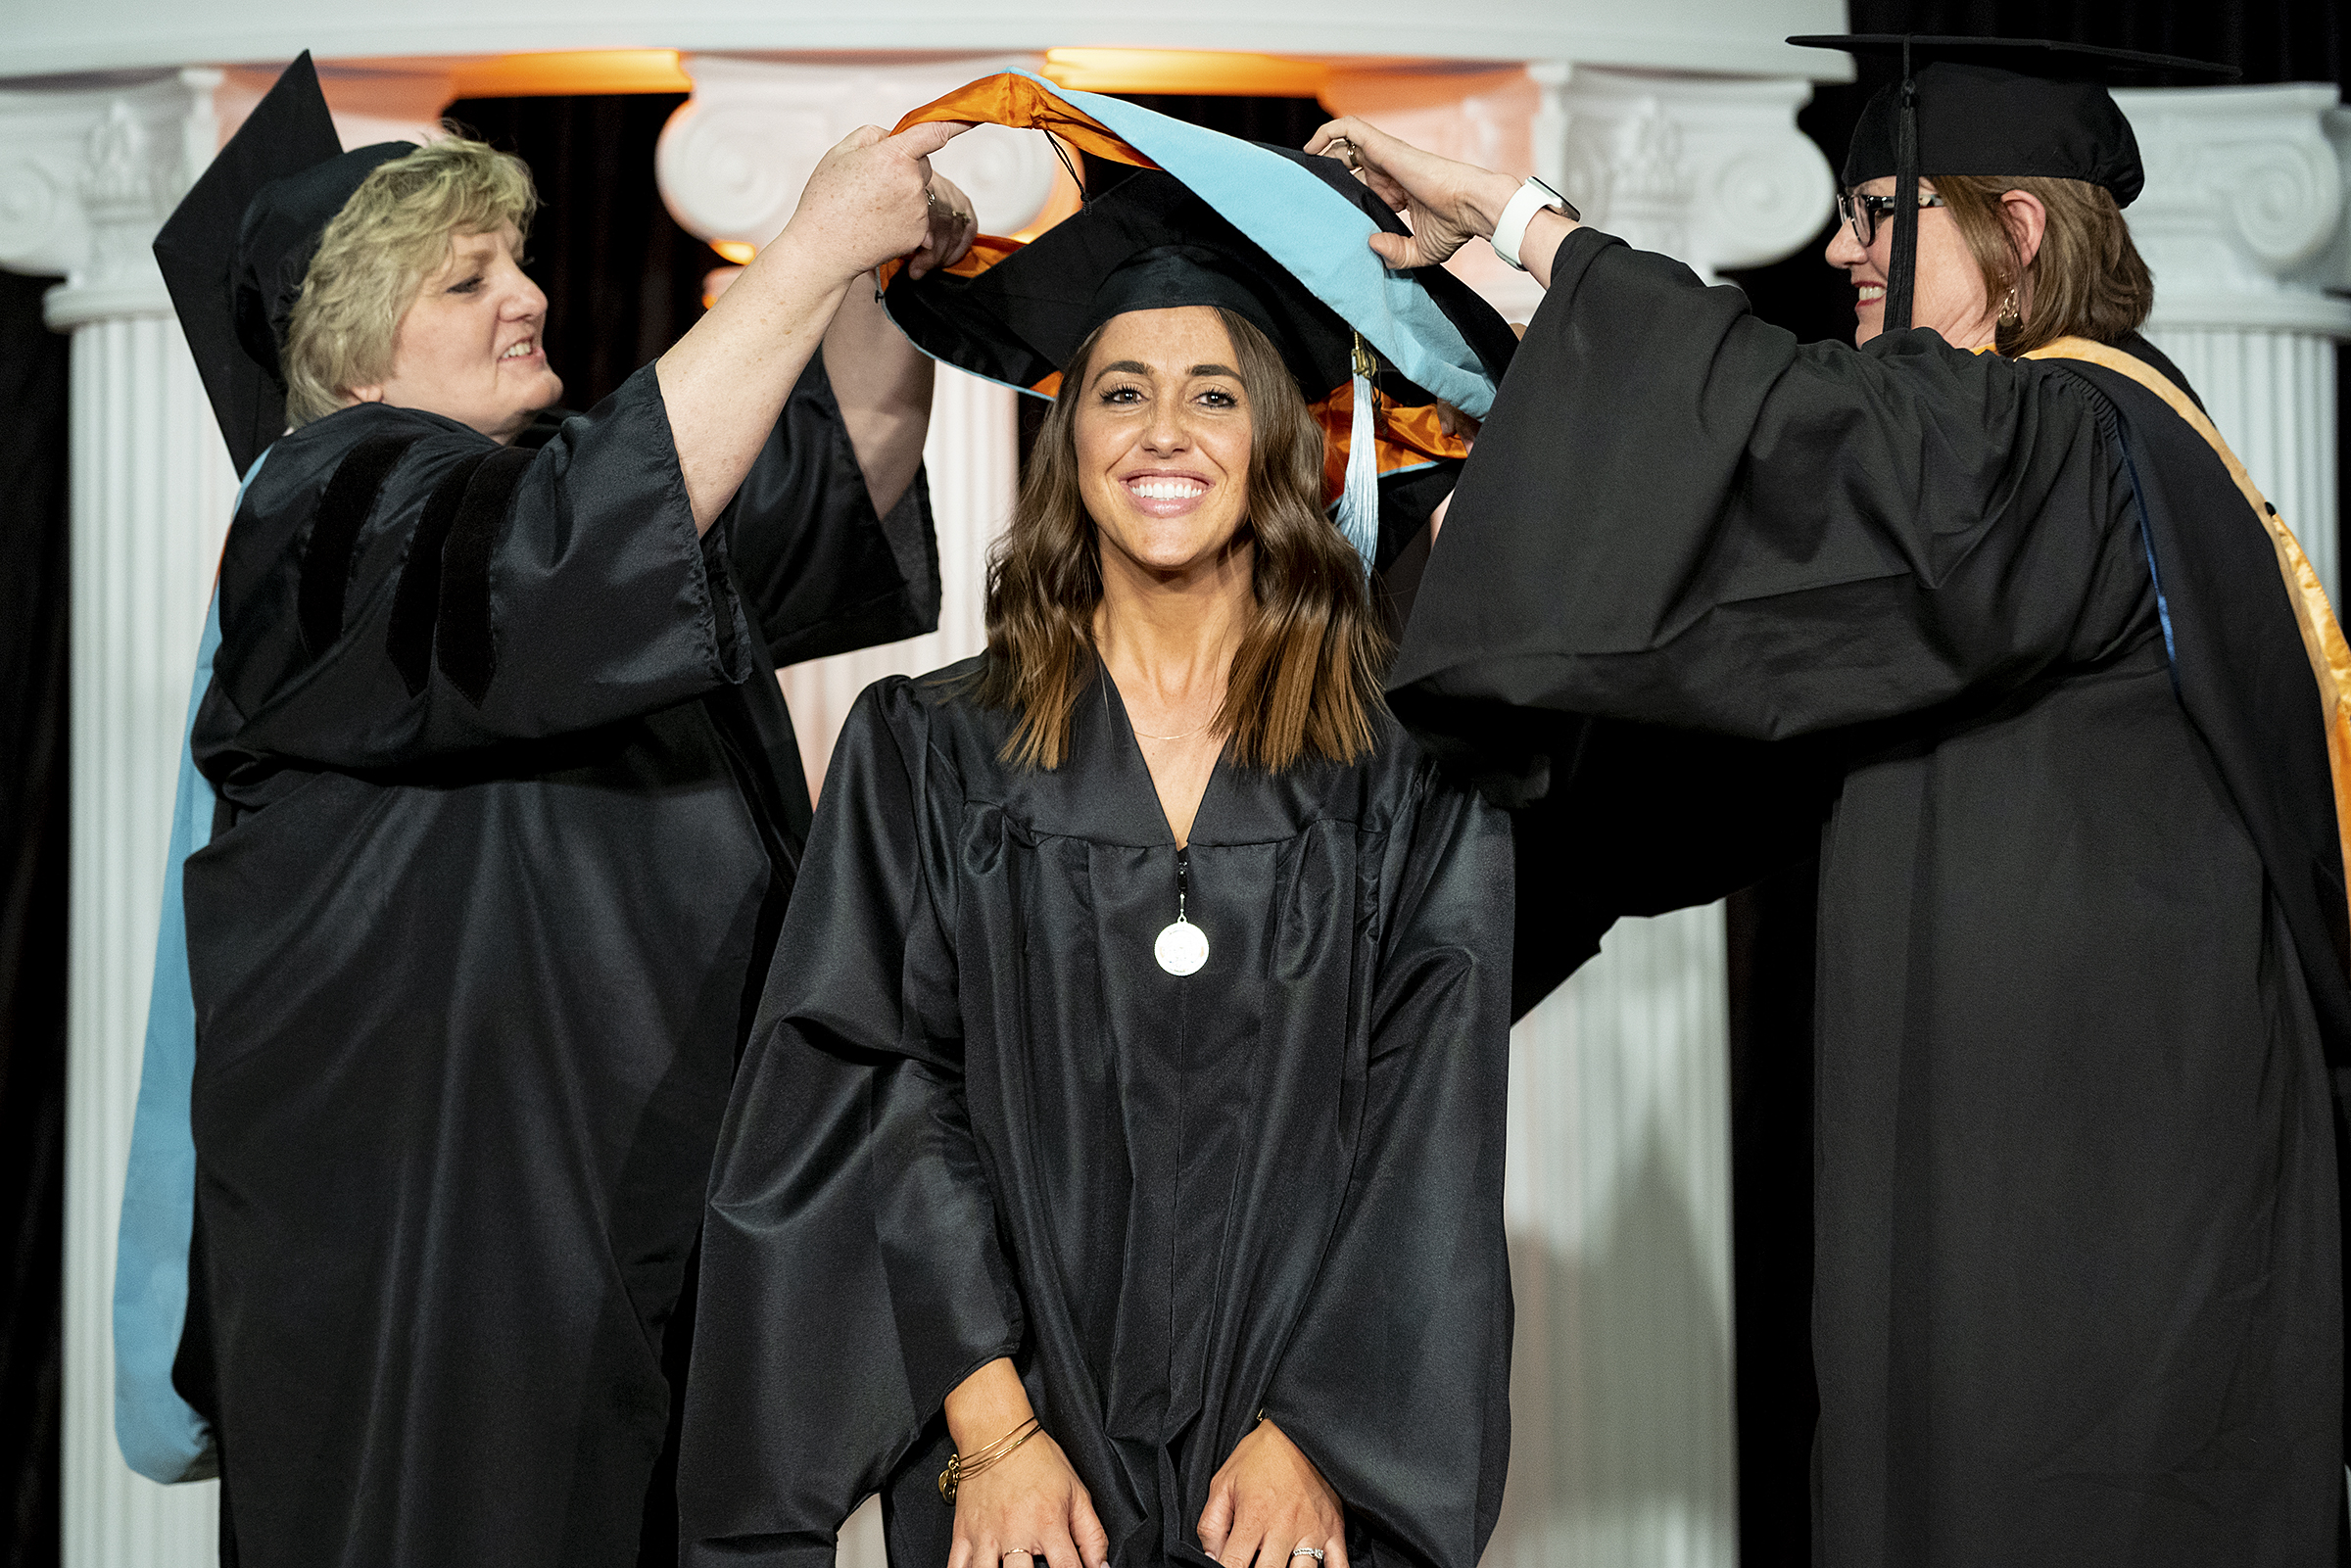 woman being hooded at hooding ceremony